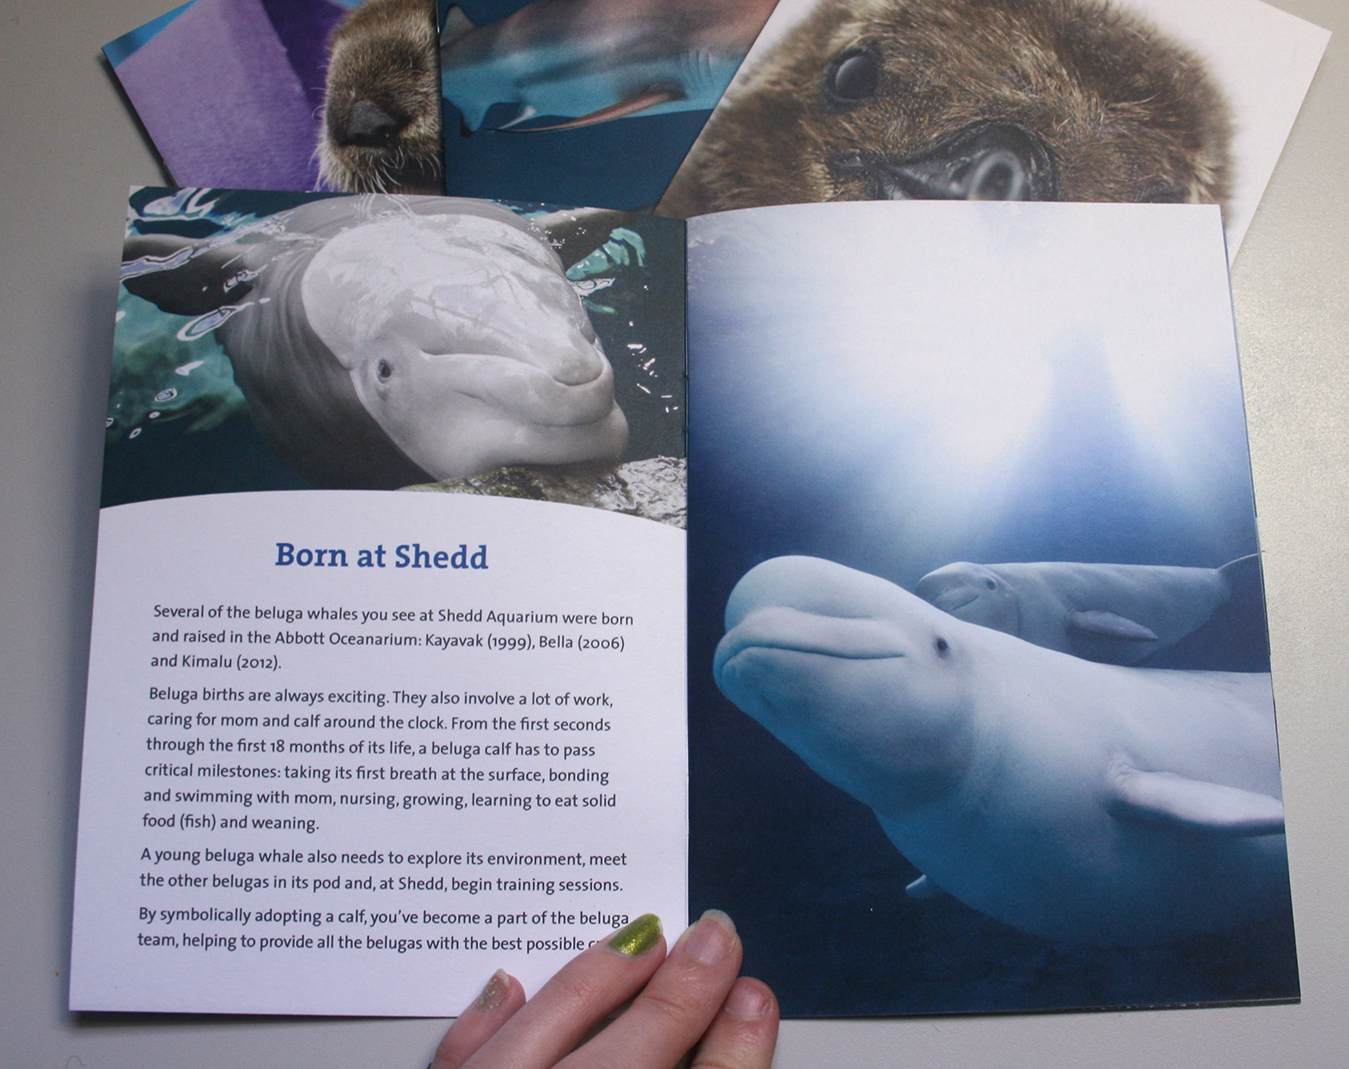 A booklet is shown opened to a spread about beluga whales. The left page features a story about a beluga born at Shedd. The right page shows a photo of a tiny beluga calf and its mother.